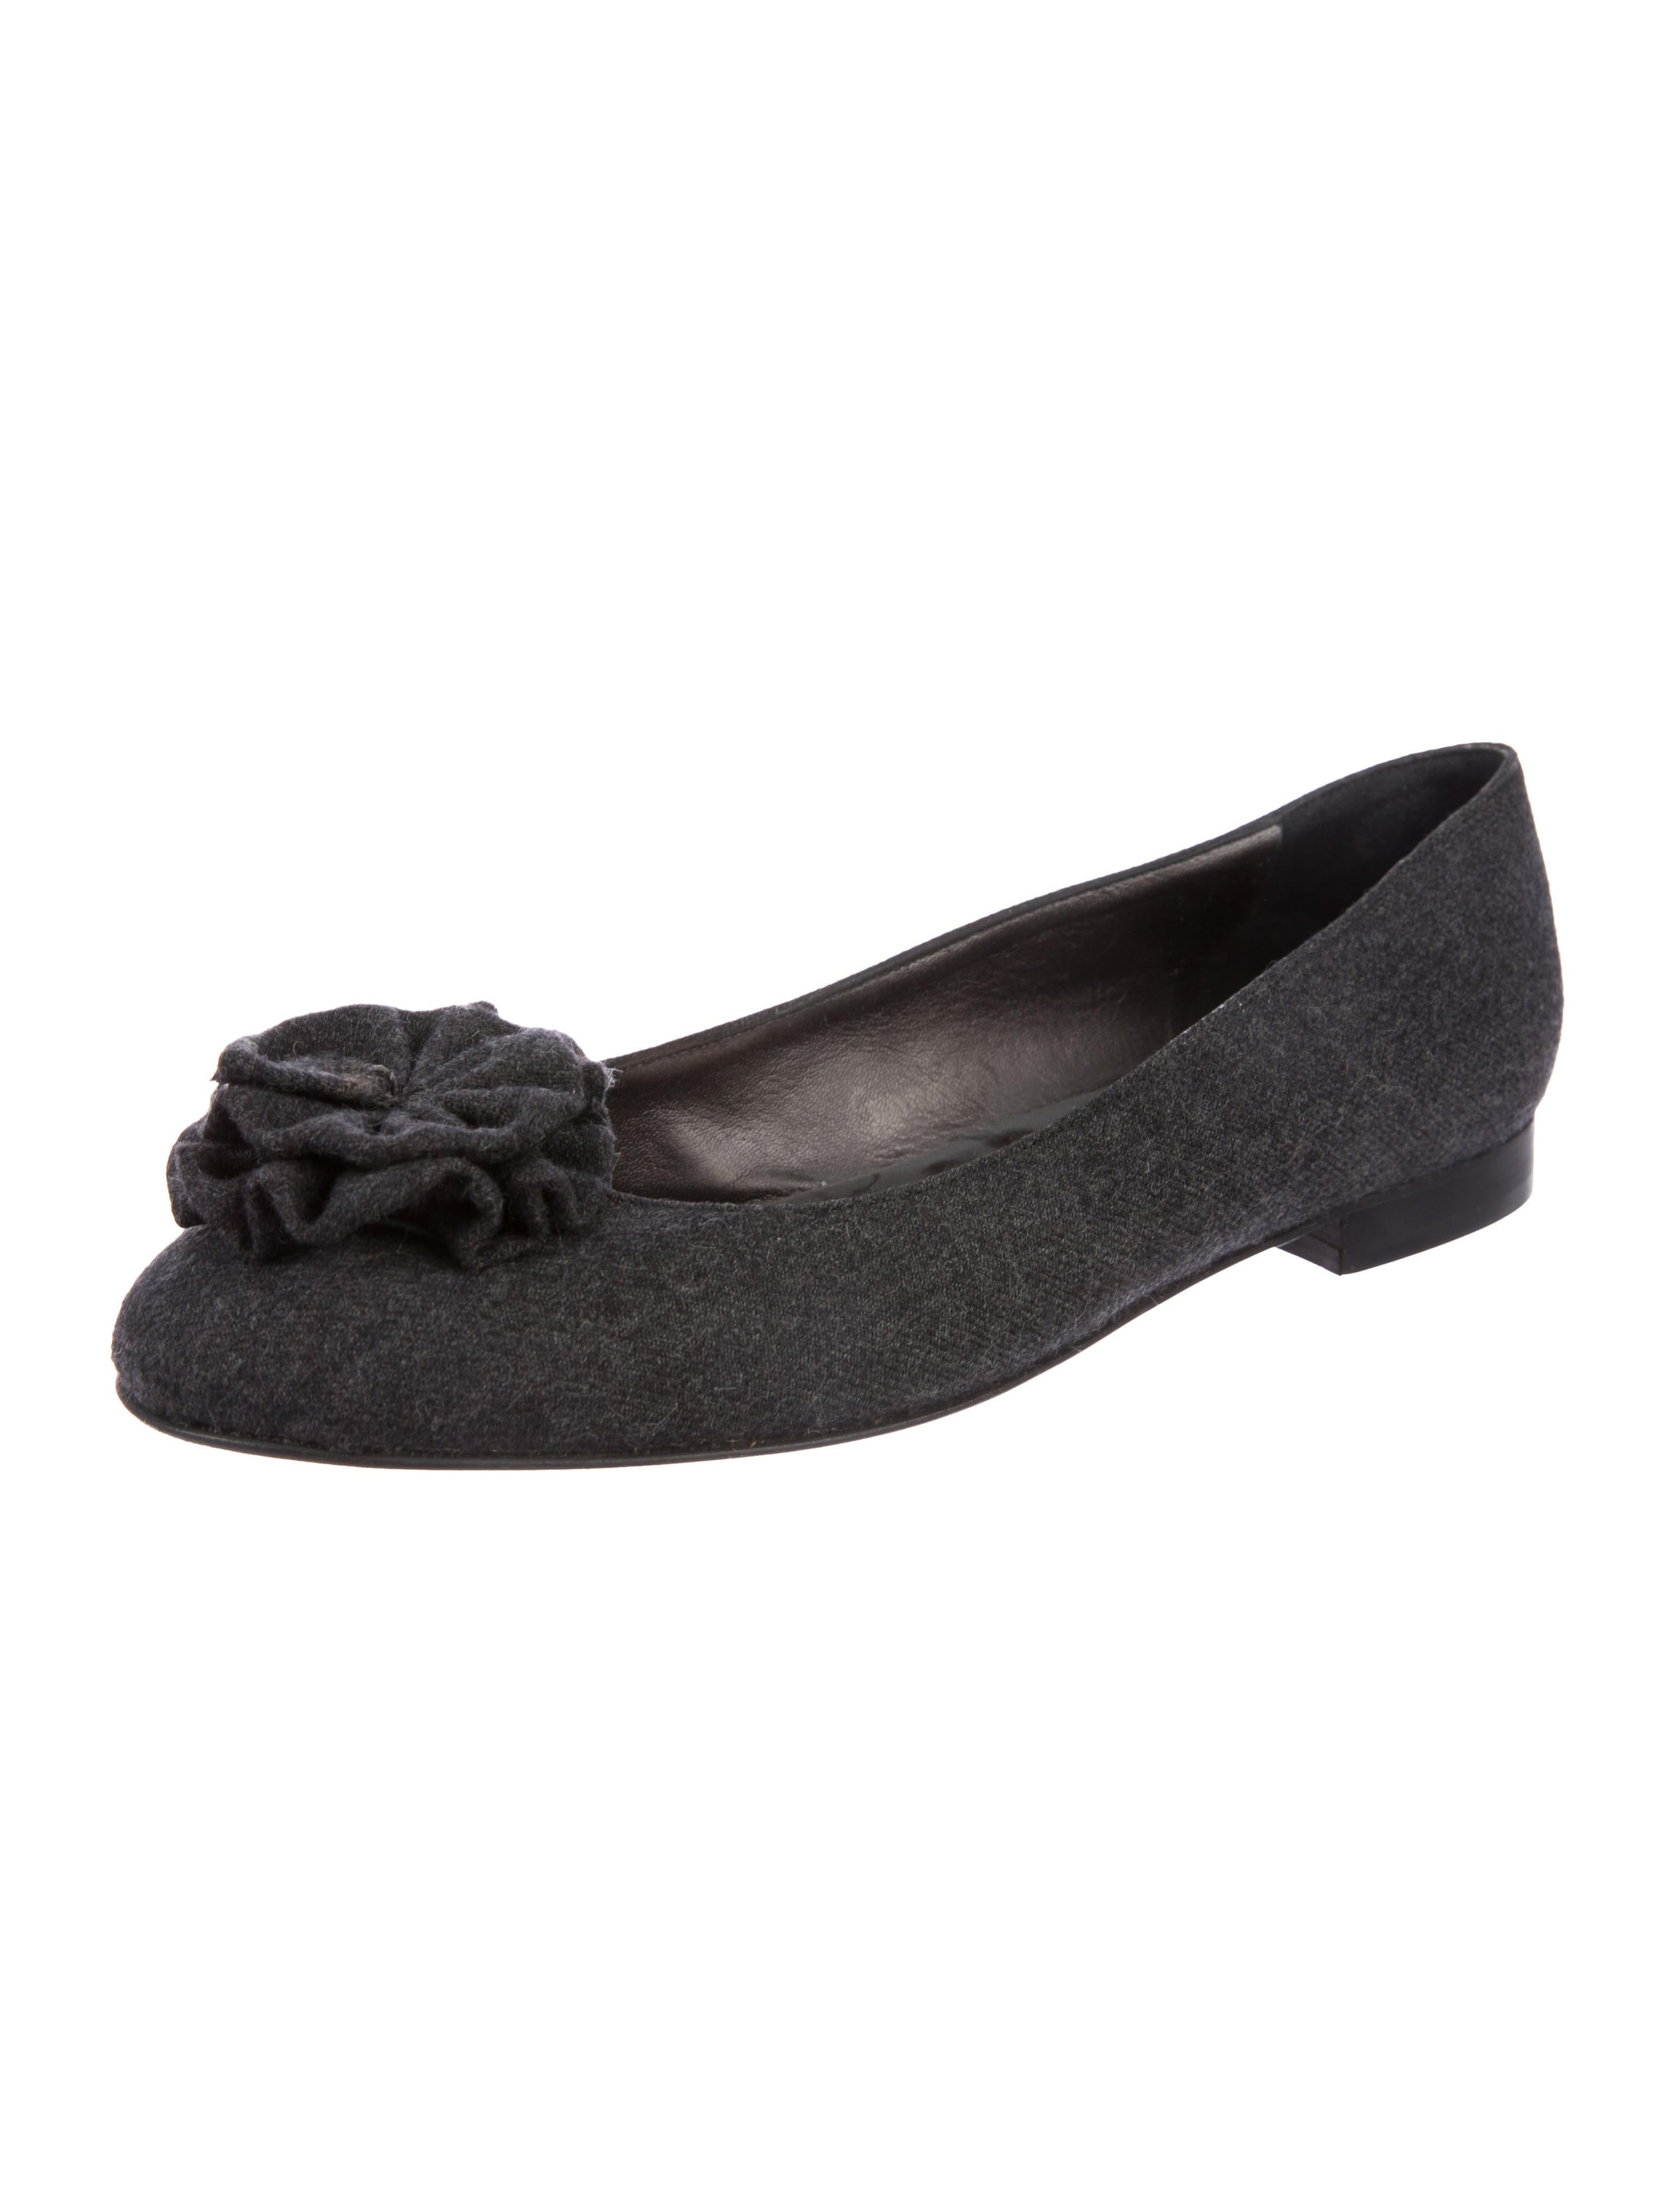 2014 for sale Manolo Blahnik Felt Round-Toe Flats cheap price pre order purchase sale online 2015 cheap online M4pk2I